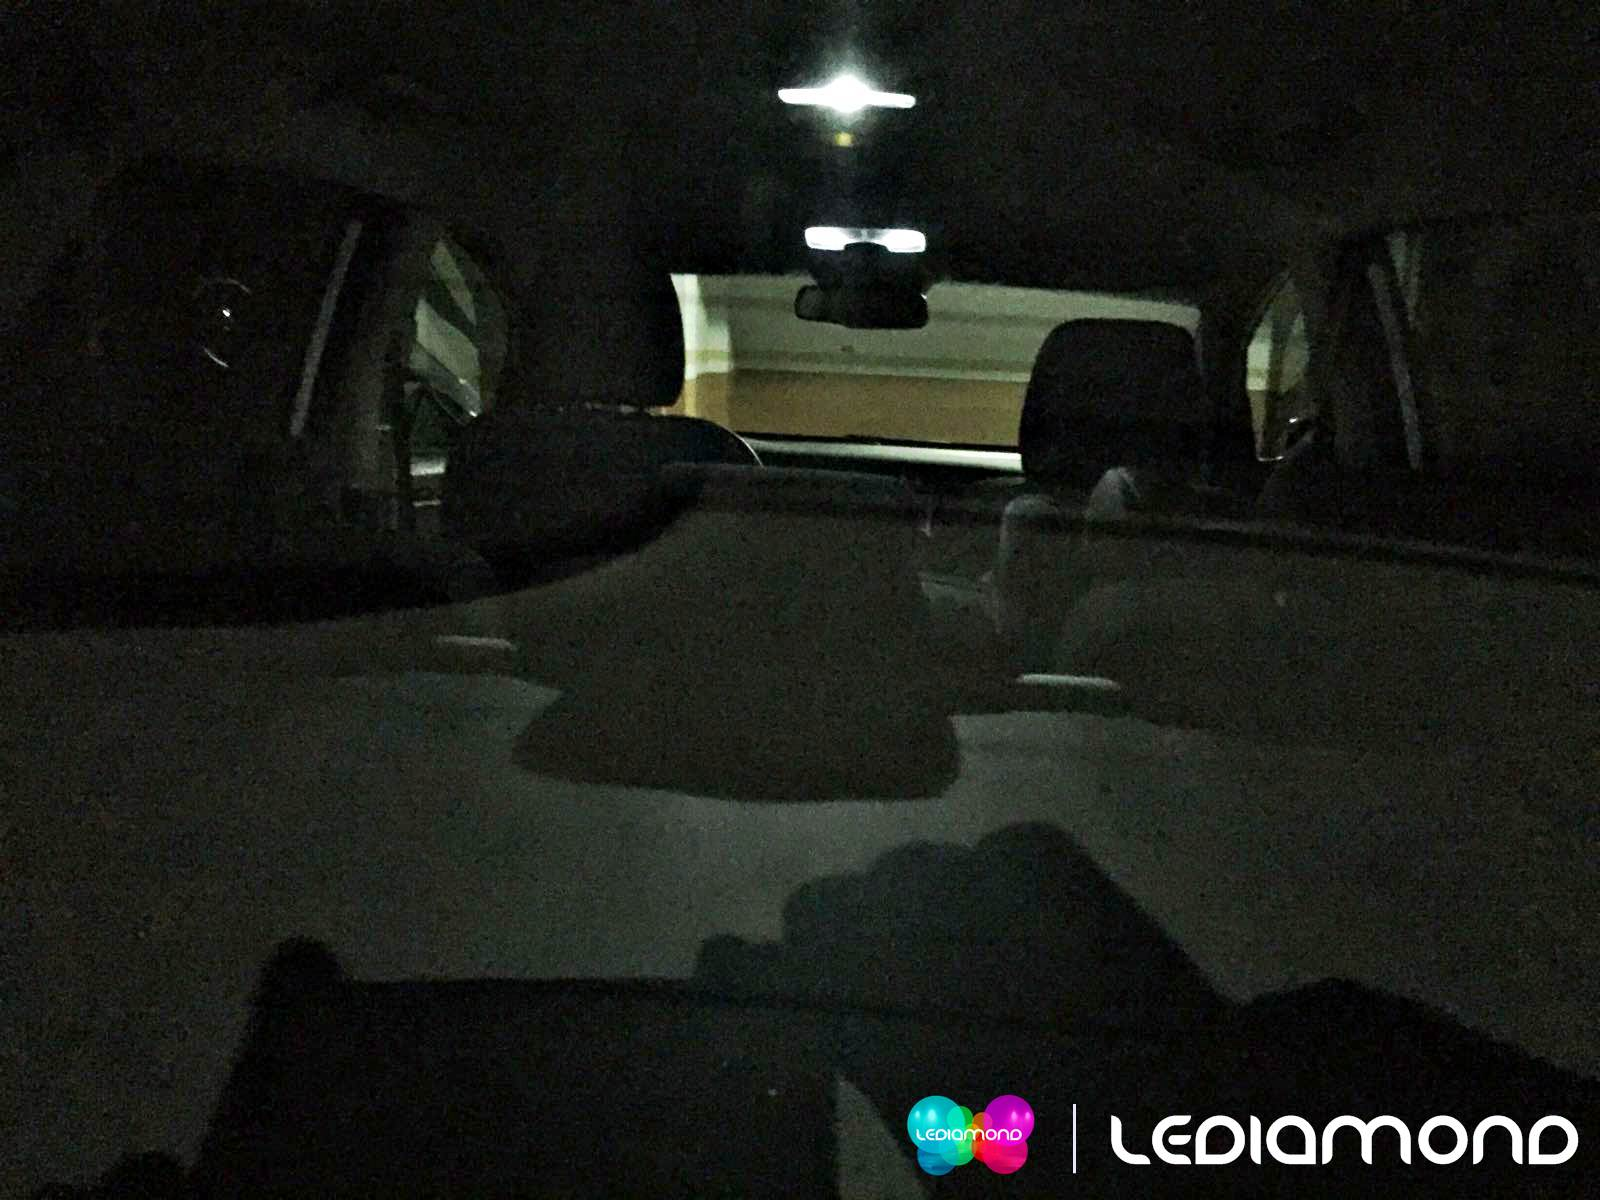 led interior 2 lediamond KIA 2